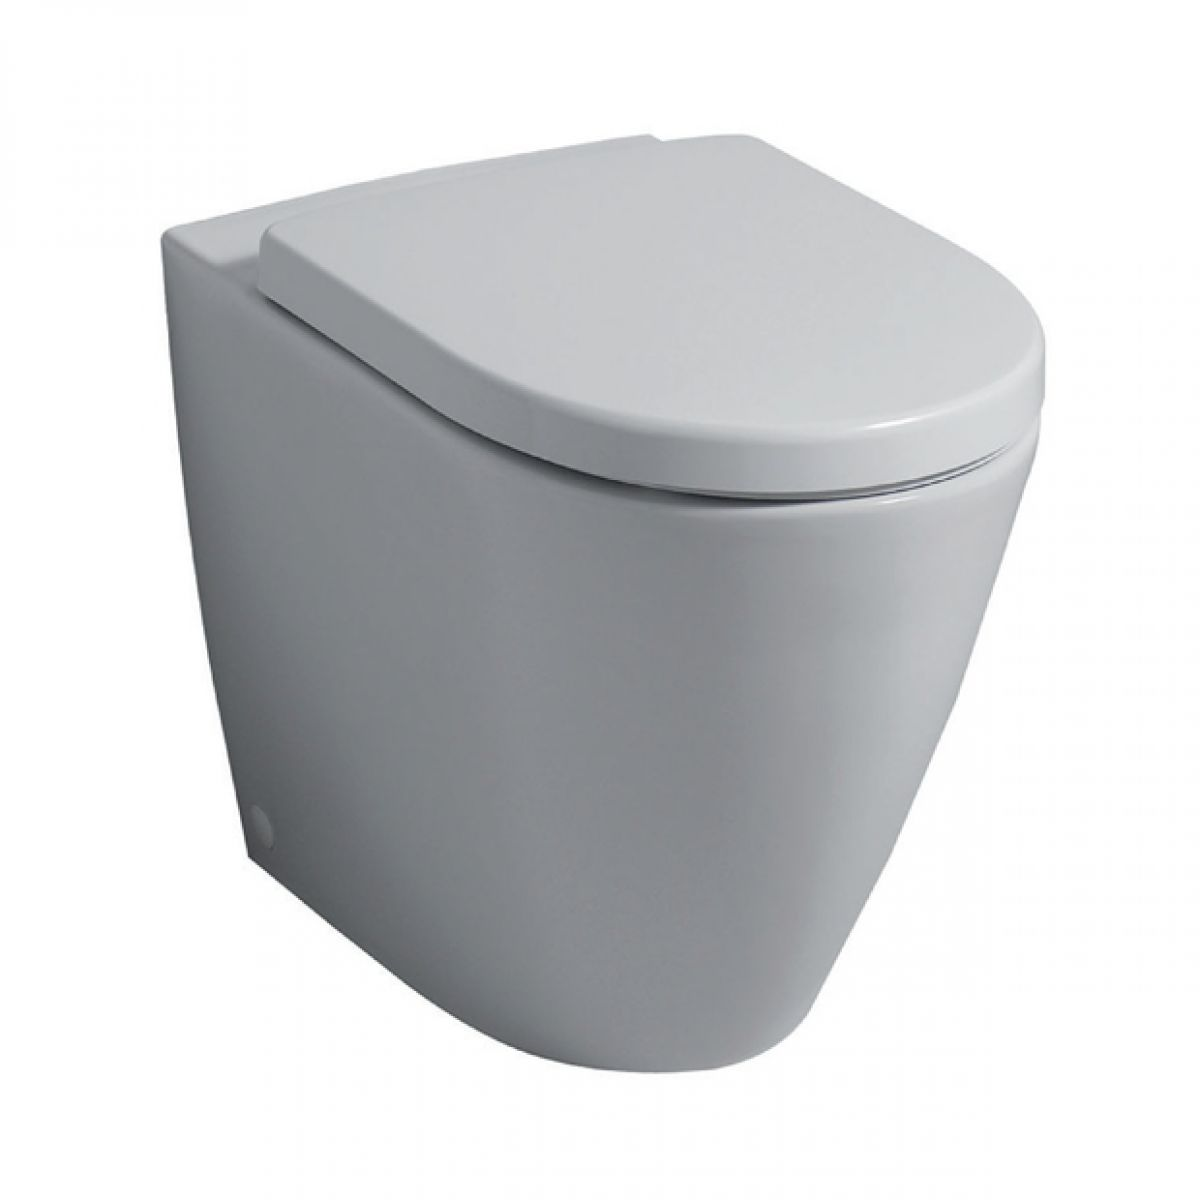 geberit icon rimfree back to wall toilet uk bathrooms. Black Bedroom Furniture Sets. Home Design Ideas